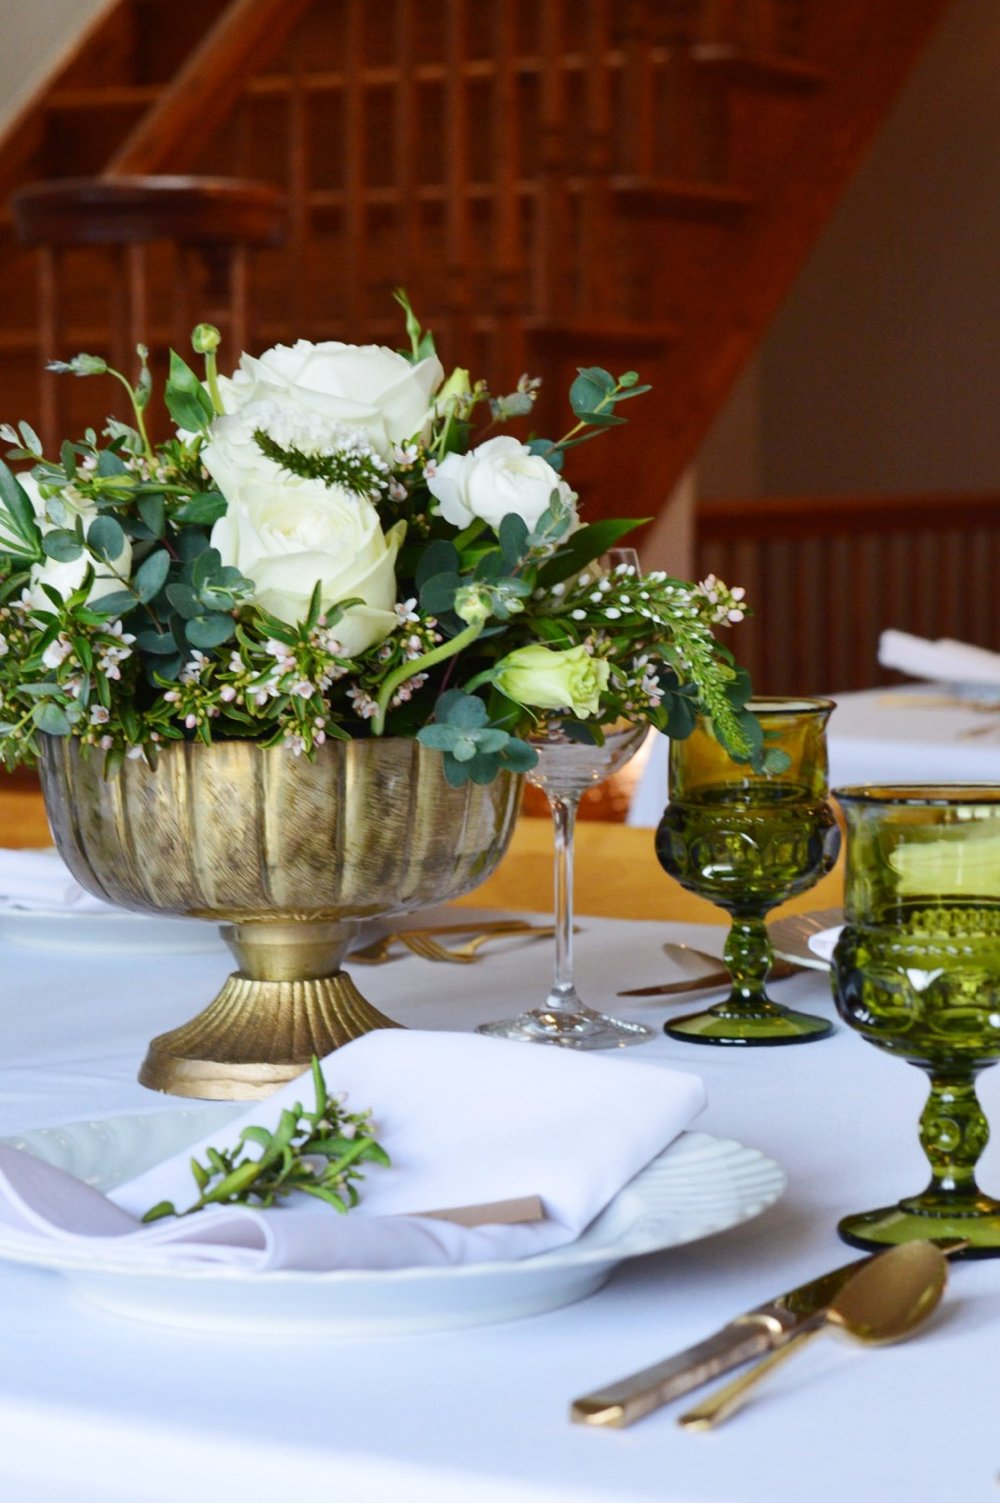 Vintage Bridal Shower  Green and White Centerpiece   Vintage Table Decor  Planning by Wrap It Up Parties